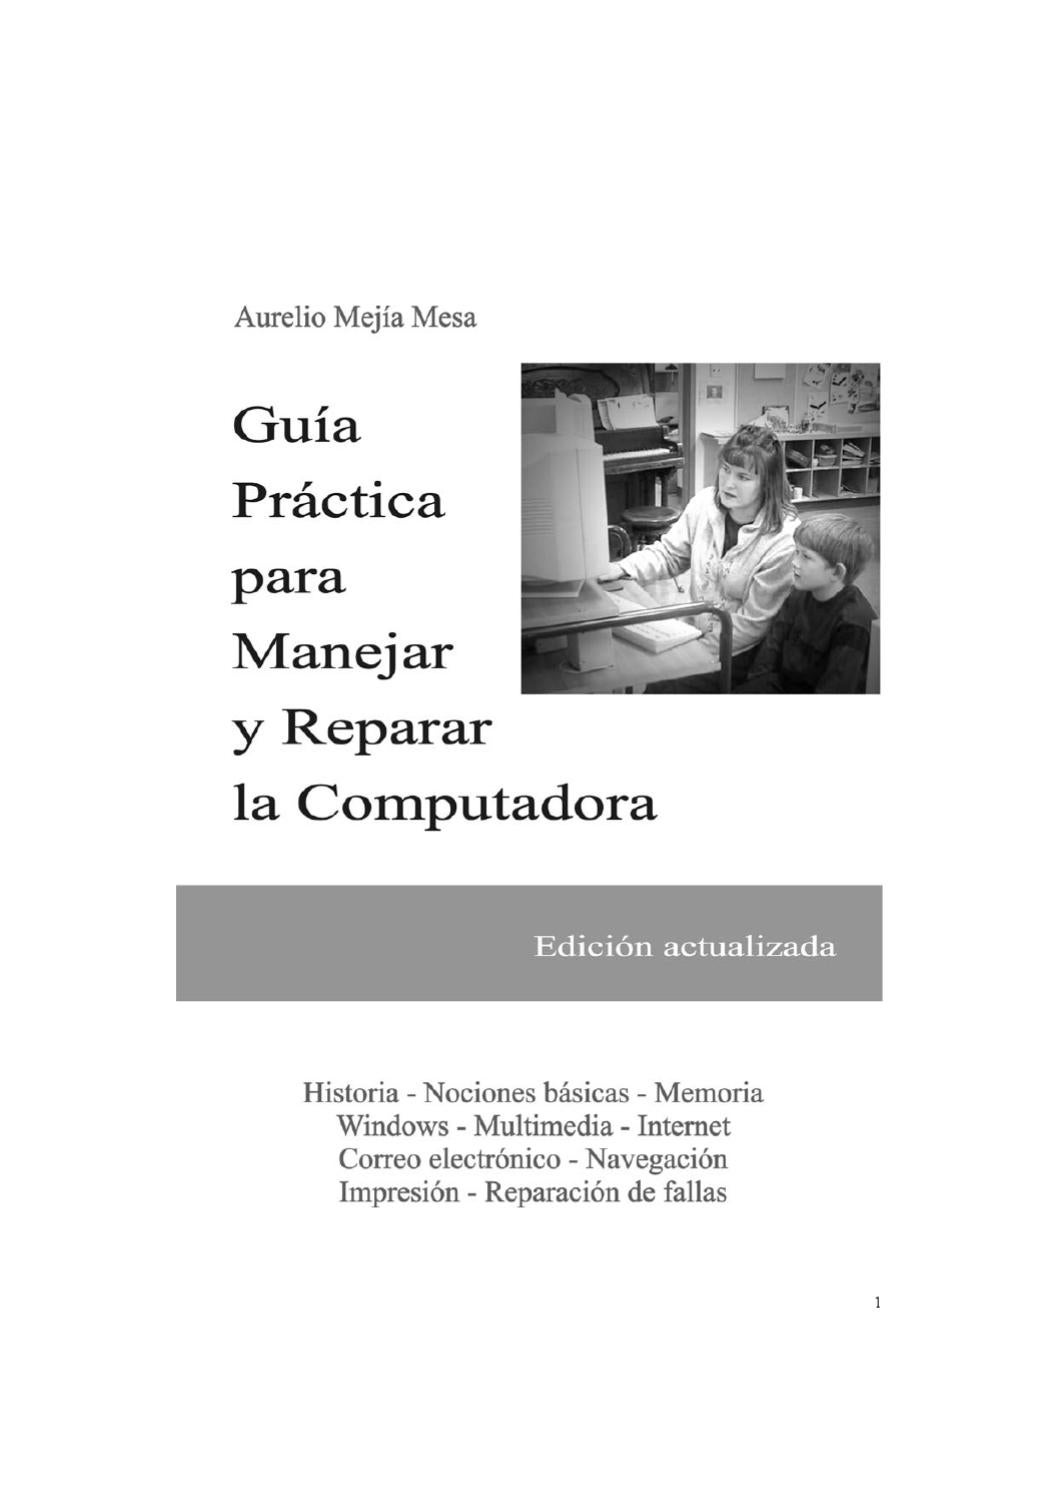 Manual de Computadores by Vistor Latorre Rojas - issuu